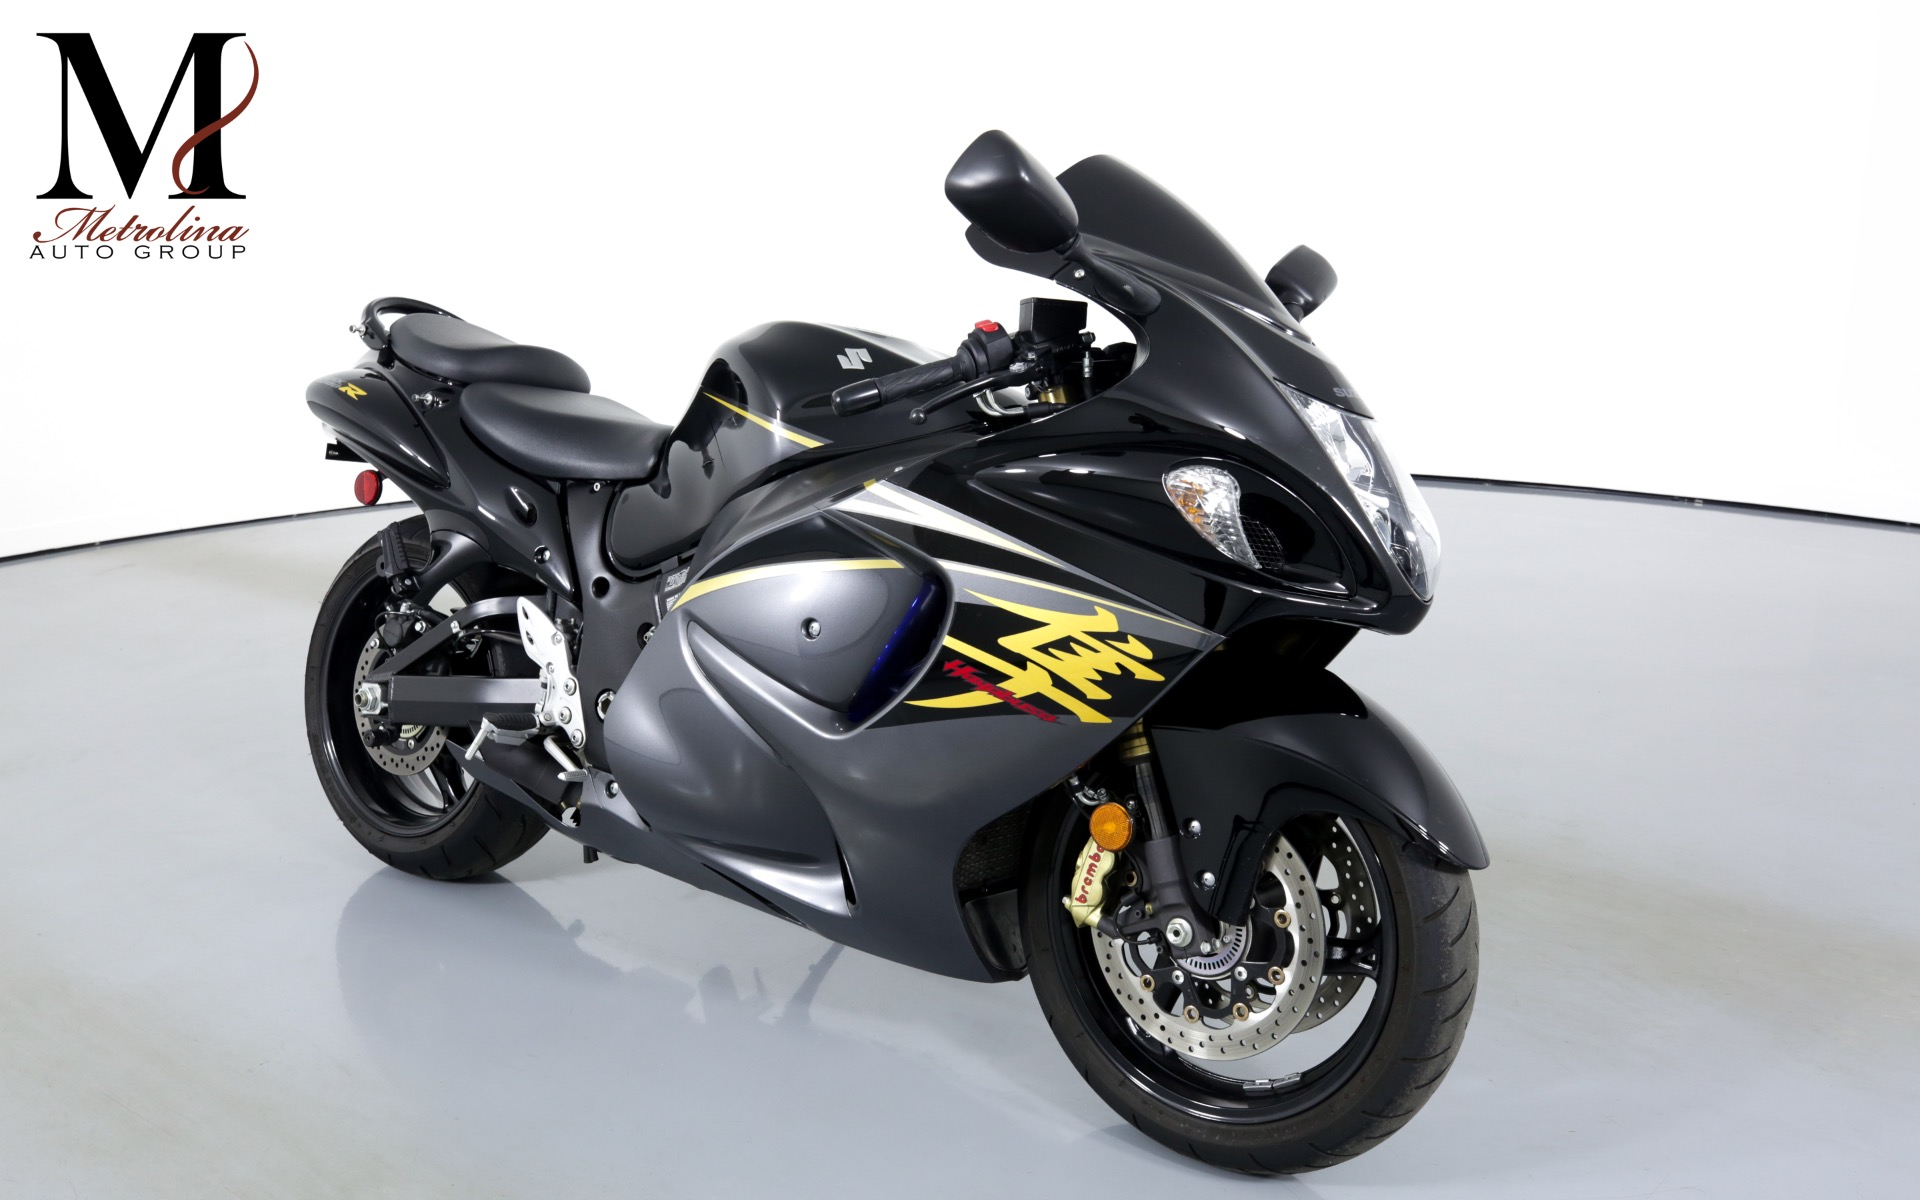 Used 2015 SUZUKI GSX 1300 RA HAYABUSA for sale $9,996 at Metrolina Auto Group in Charlotte NC 28217 - 1